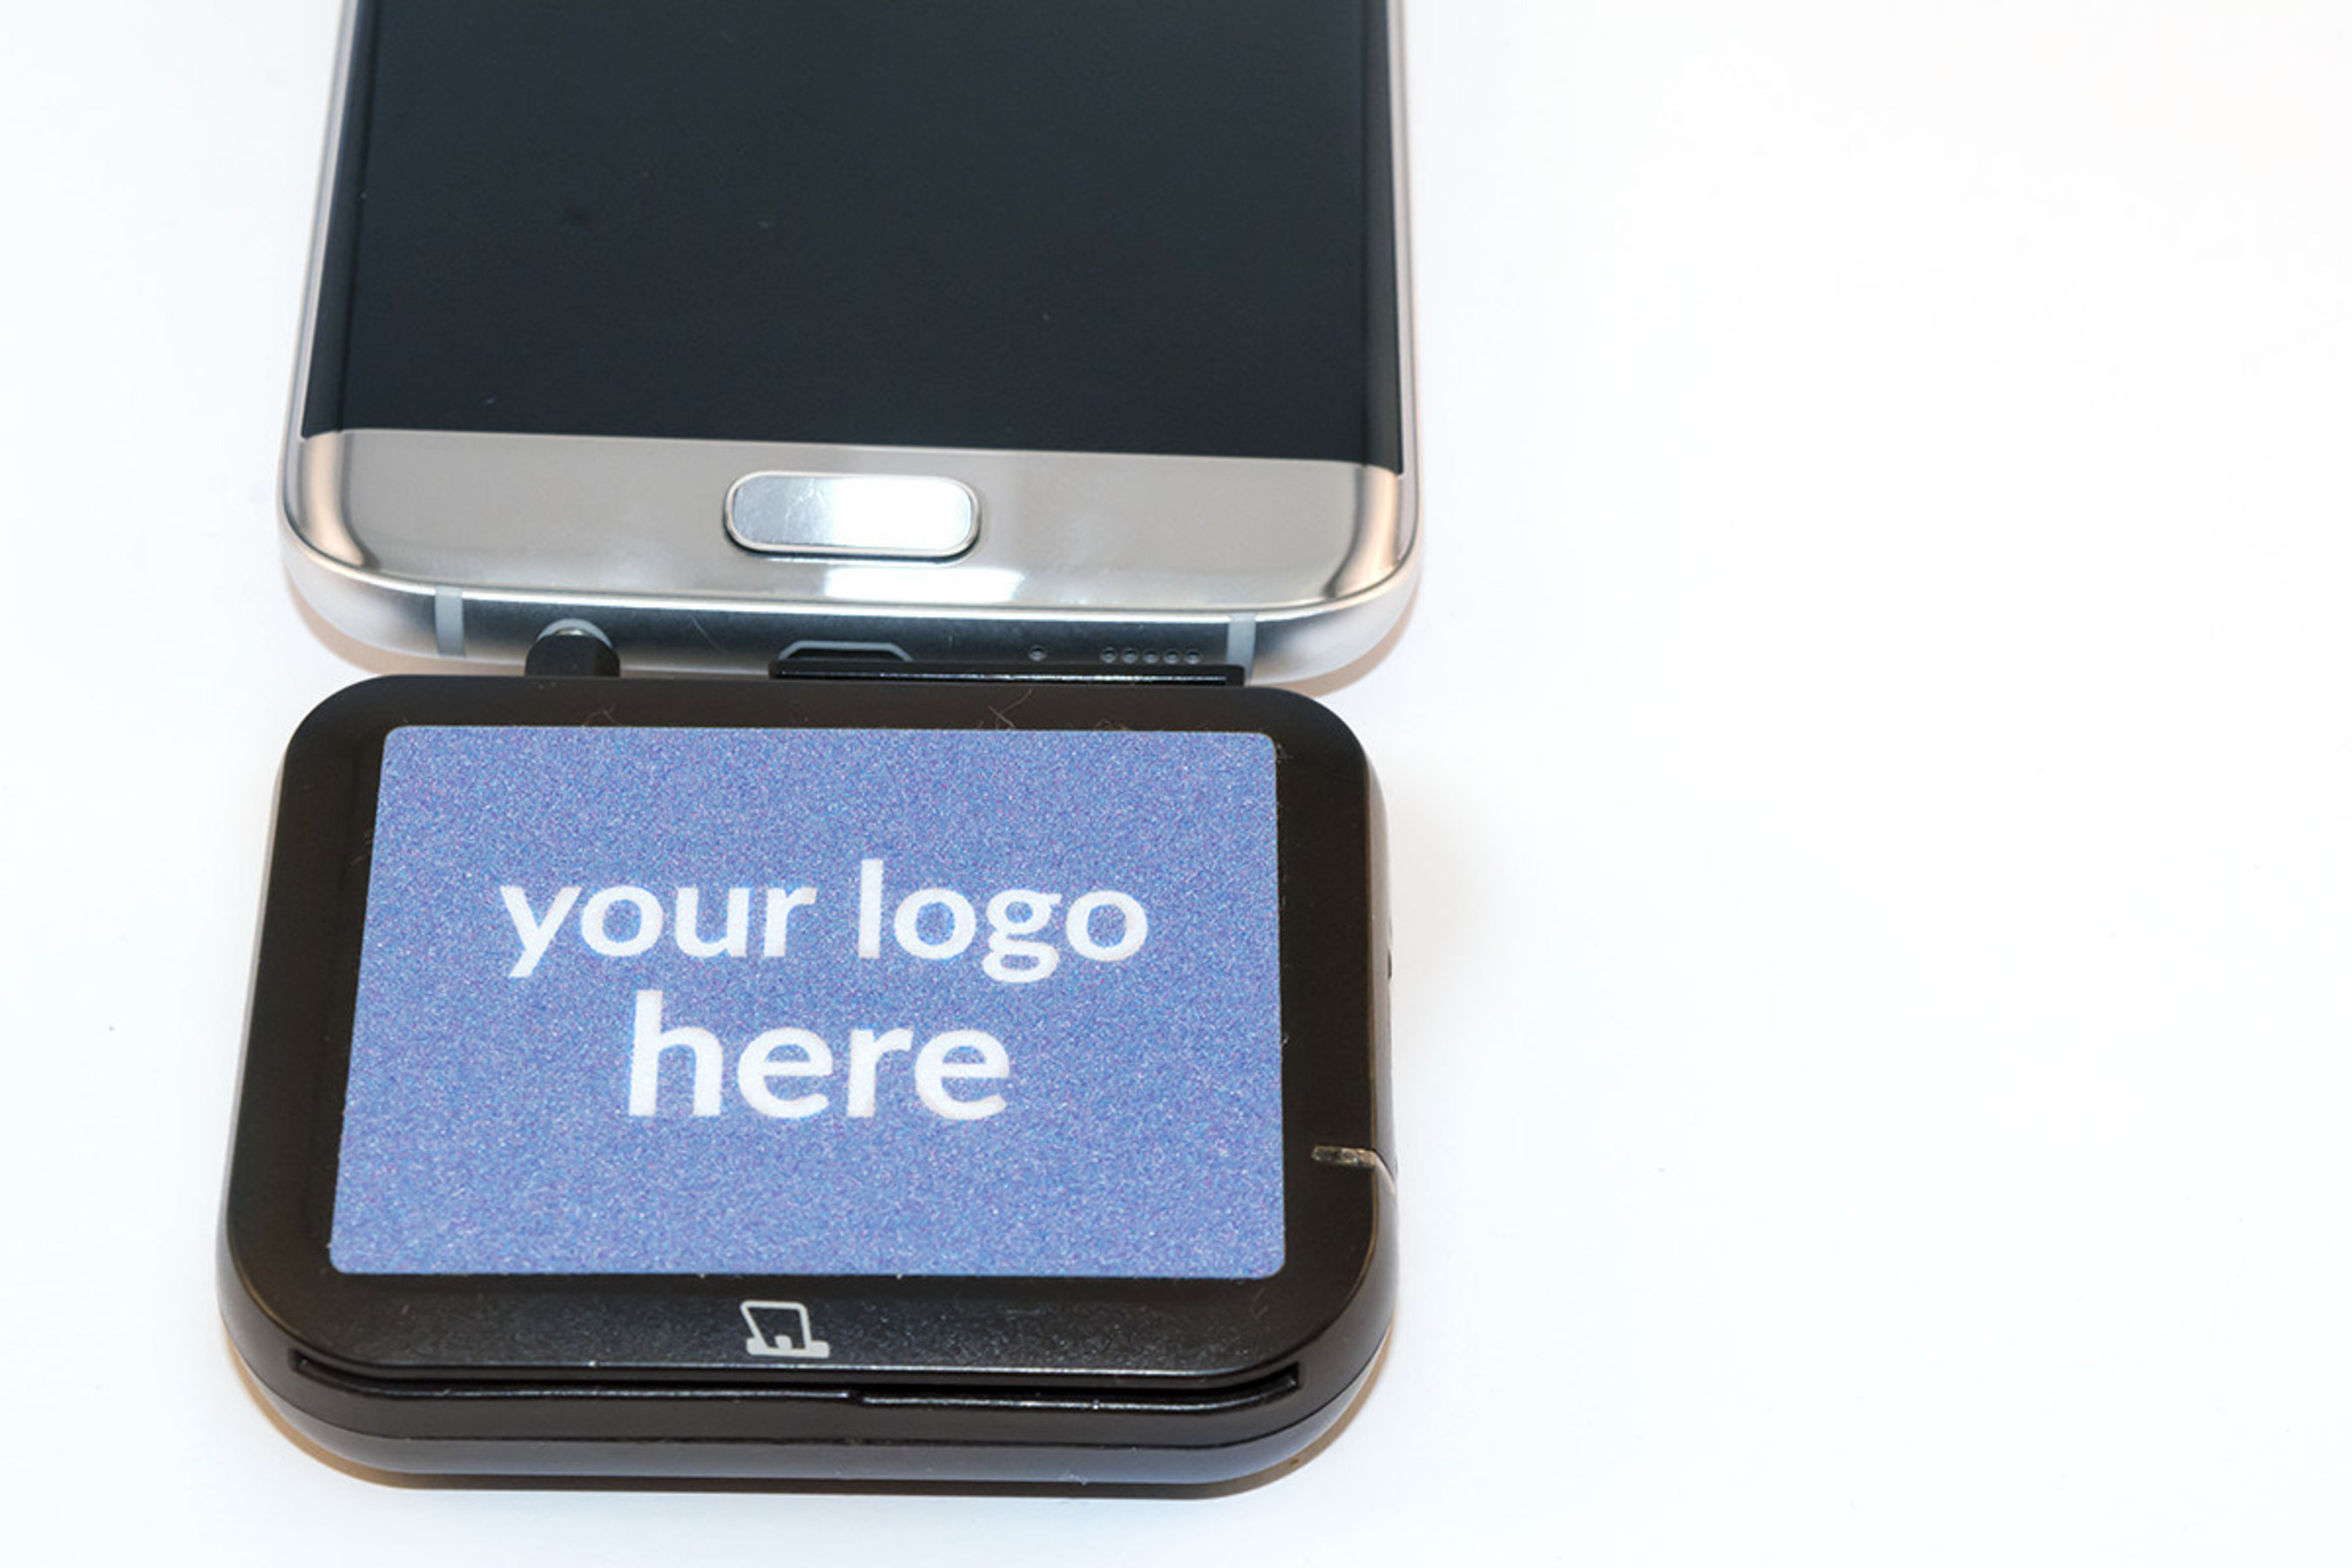 WePay Introduces First White Label Mobile Point of Sale Solution for Platforms